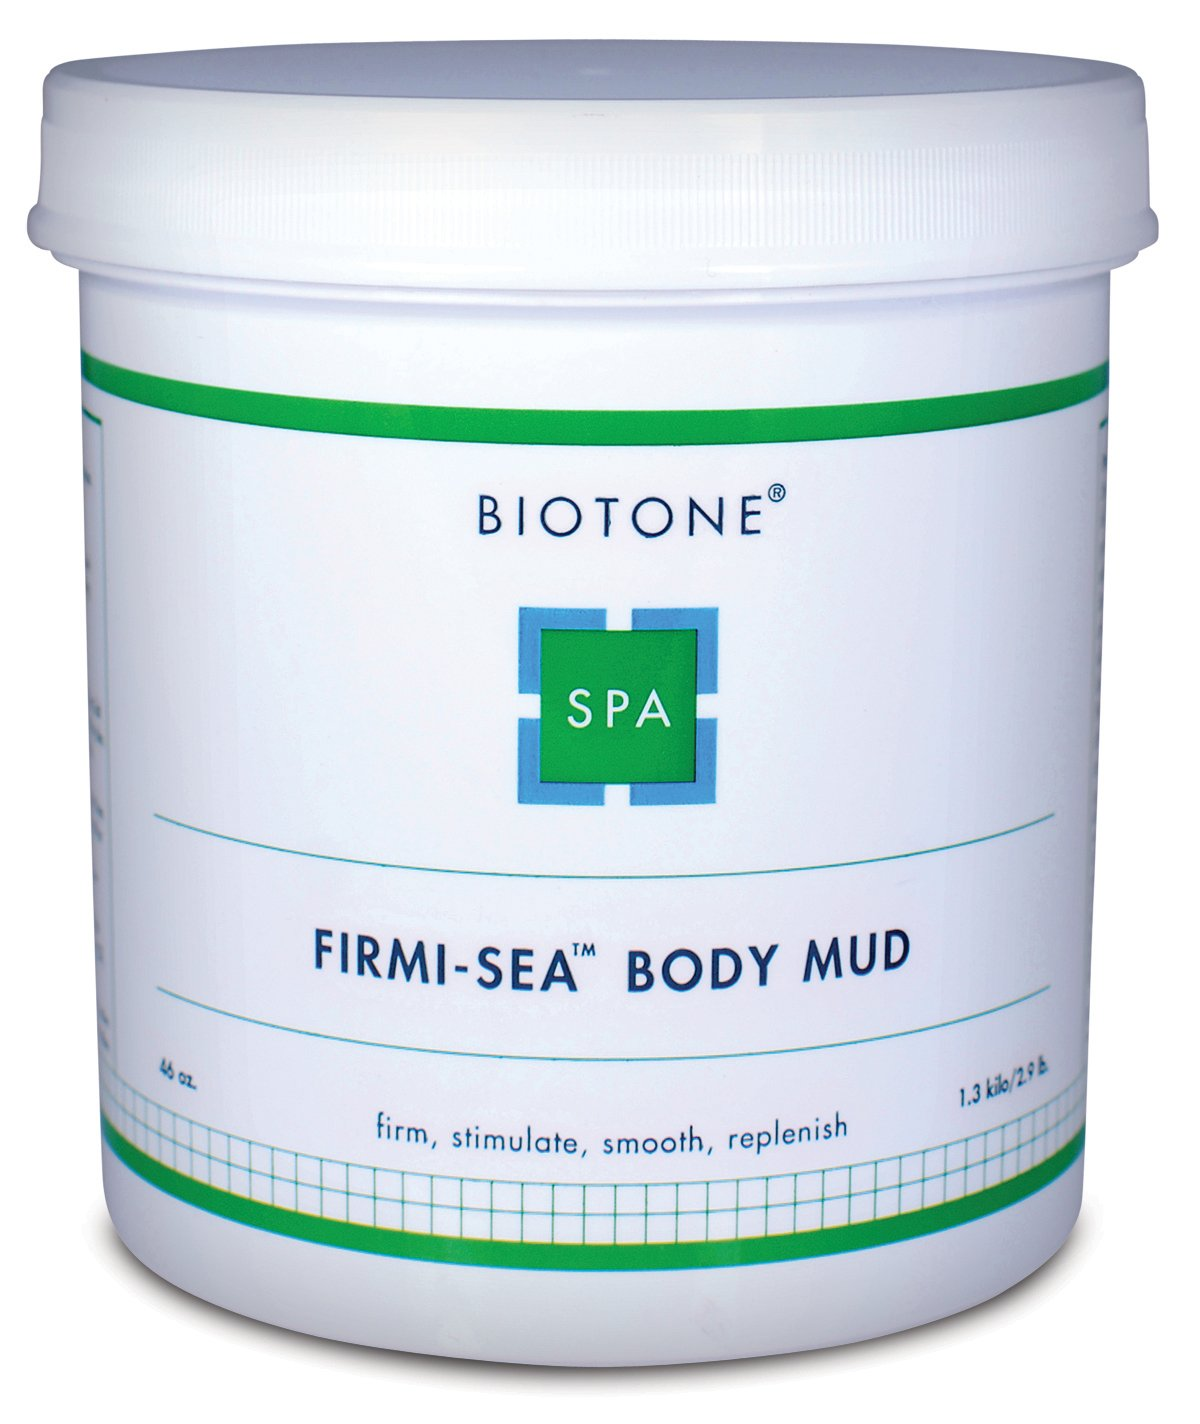 BIOTONE Firmi-Sea Body Mud - 46 oz